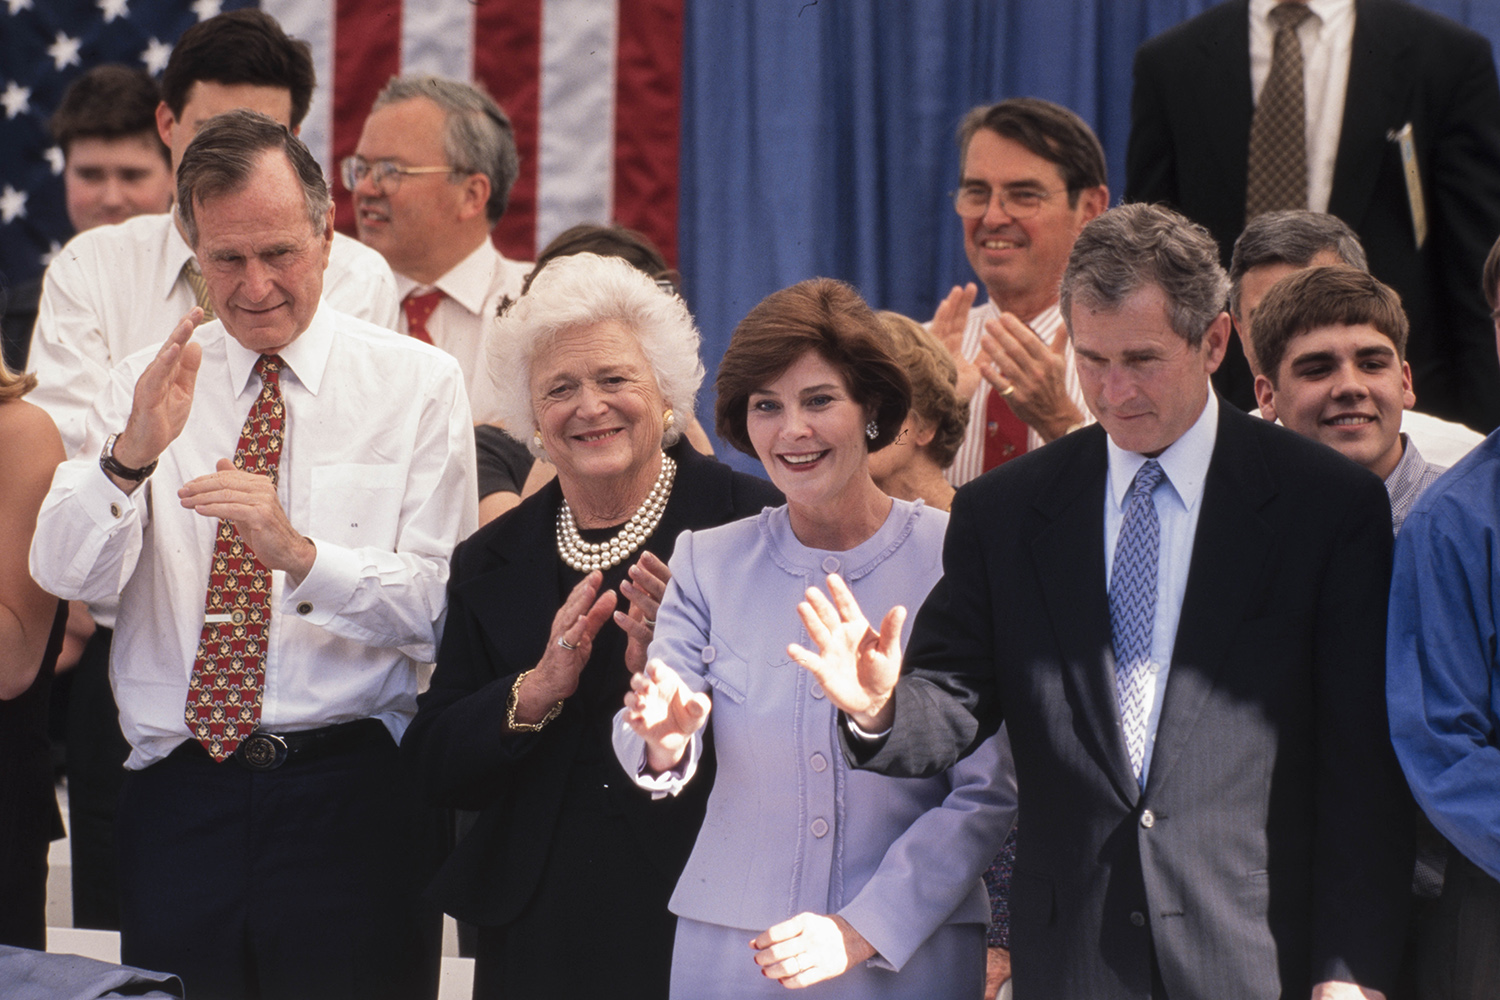 Left to right: Former President George H.W. Bush, his wife, former First Lady Barbara Bush, Laura Bush and her husband George W. Bush, who was being inaugurated for his second term as governor, in Austin on Jan. 19, 1999.